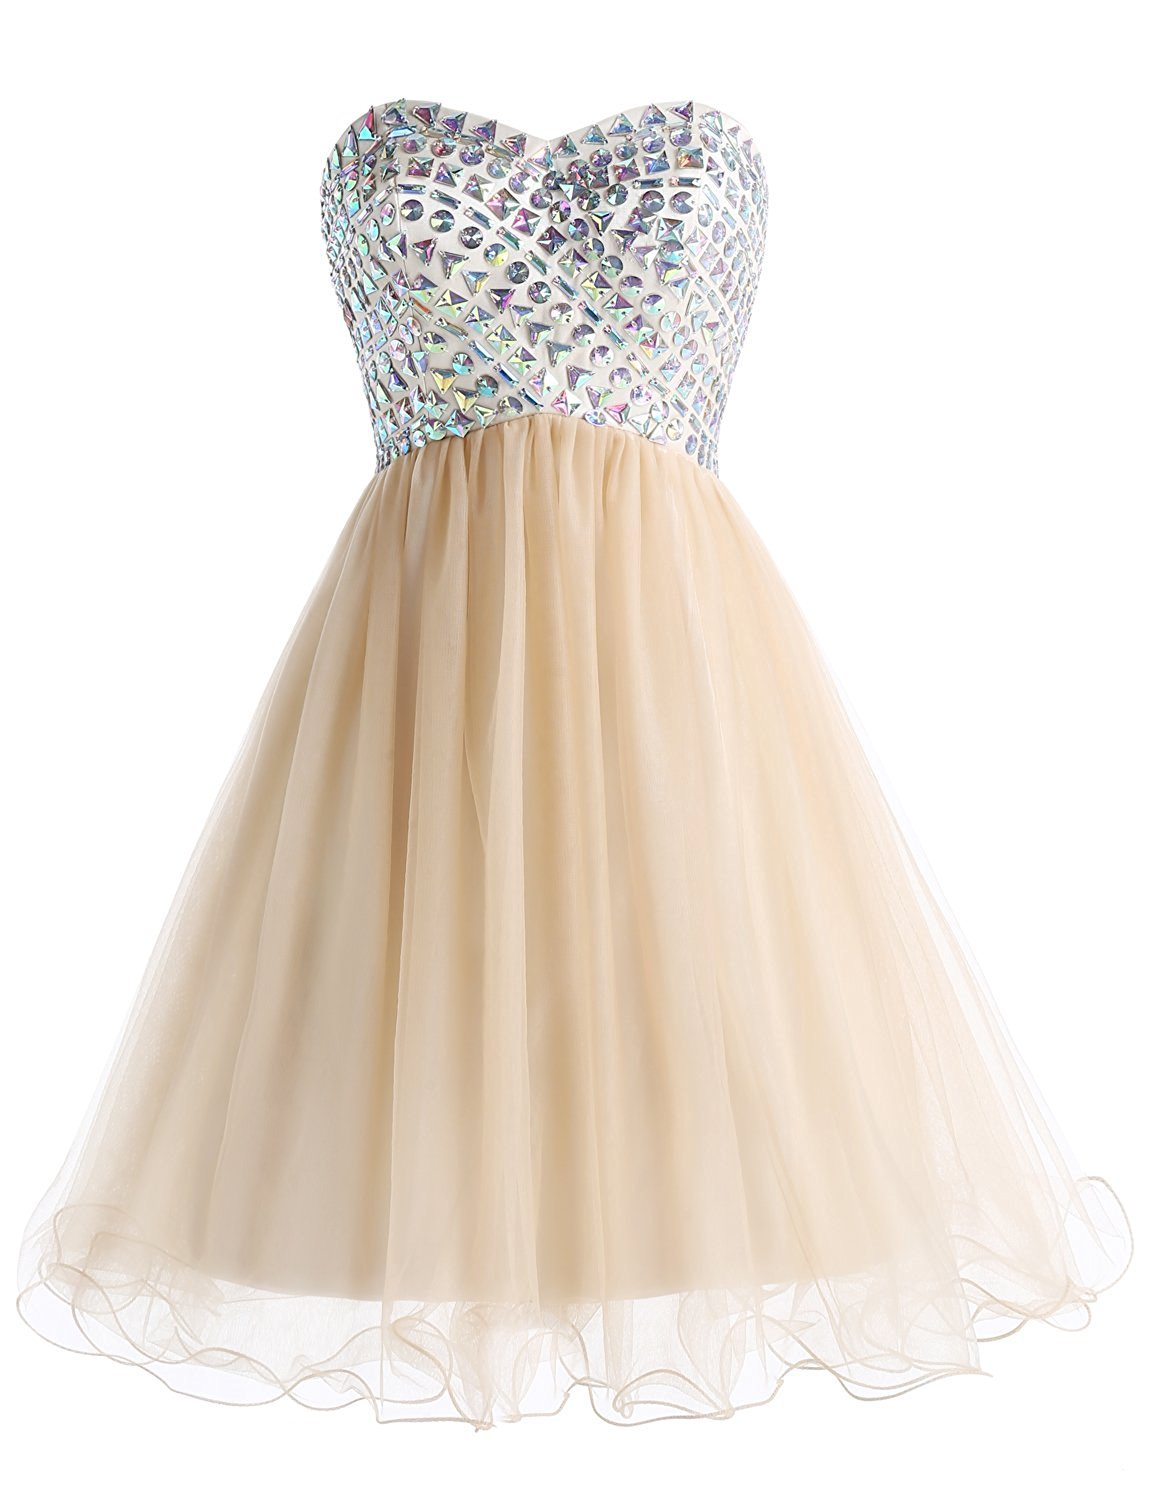 Primary image for Short Sweetheart 2018 Prom Party Dresses Tulle Beading Homecoming Dresses Corset